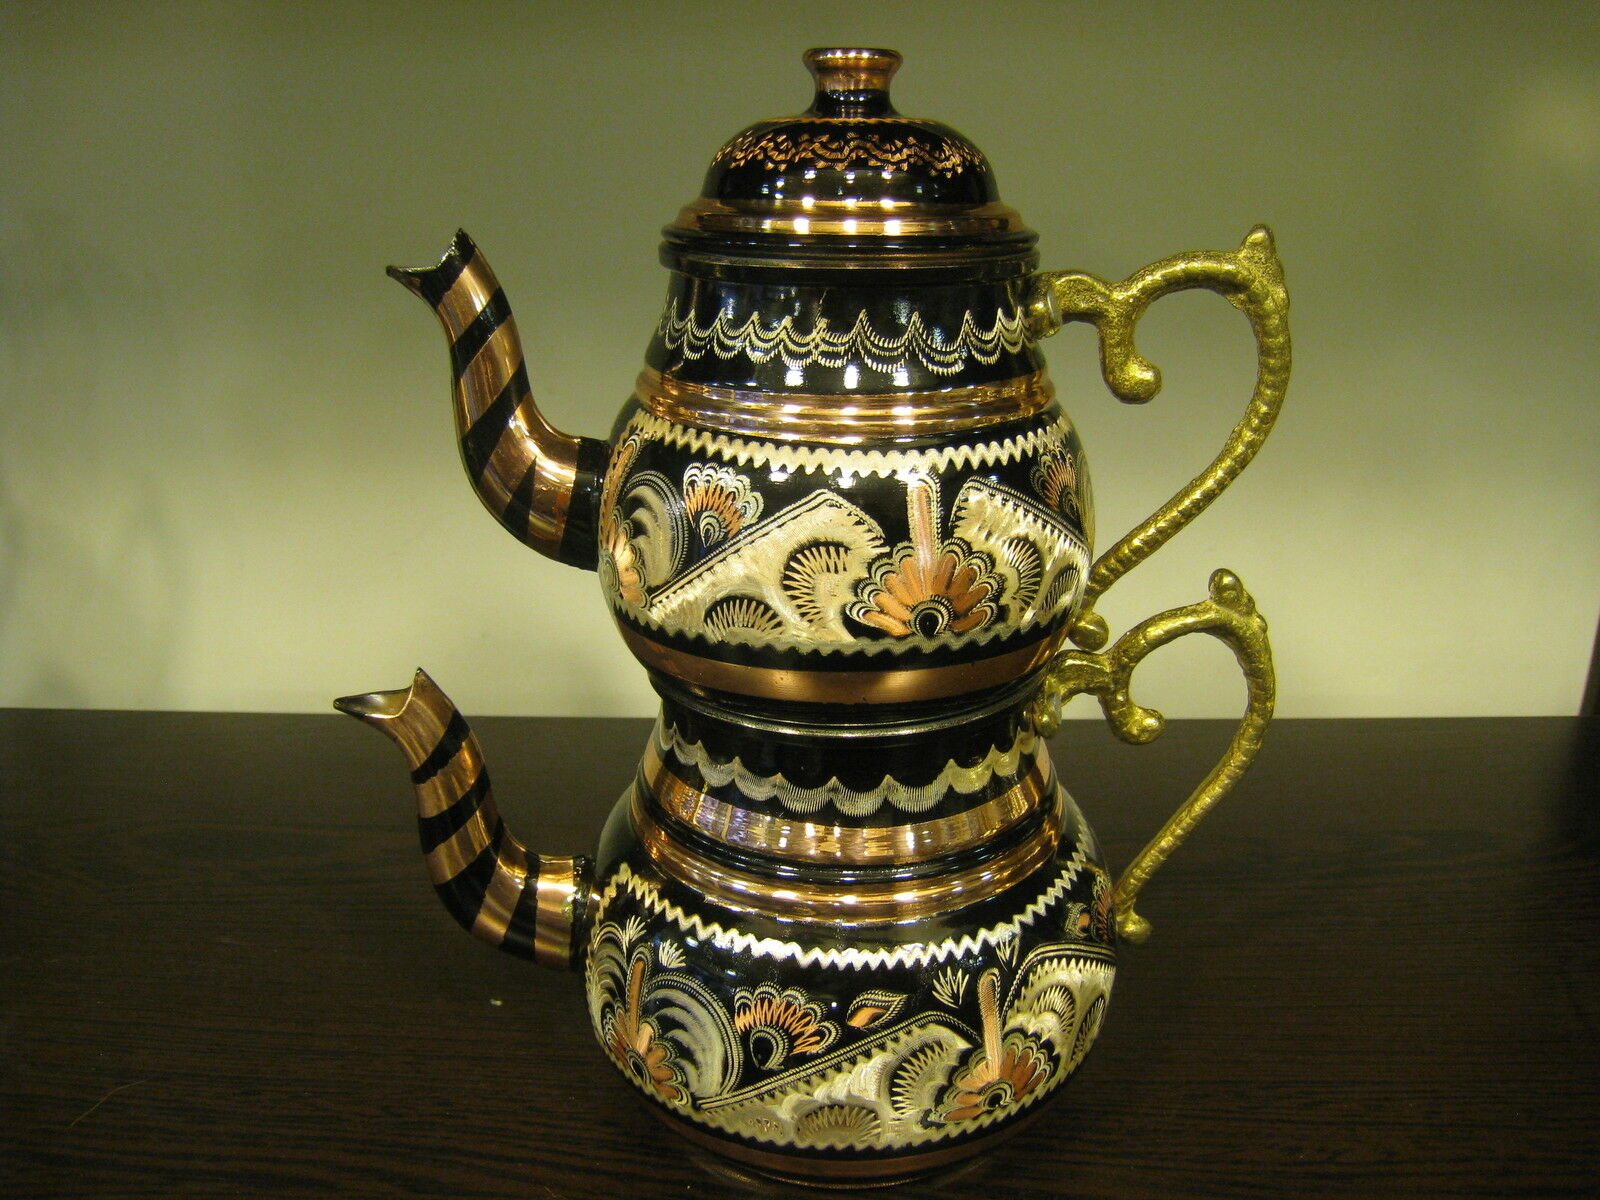 AUTHENTIC TURKISH TRADITIONAL HANDMADE HANDHAMMERED COPPER TEAPOT SET CAYDANLIK